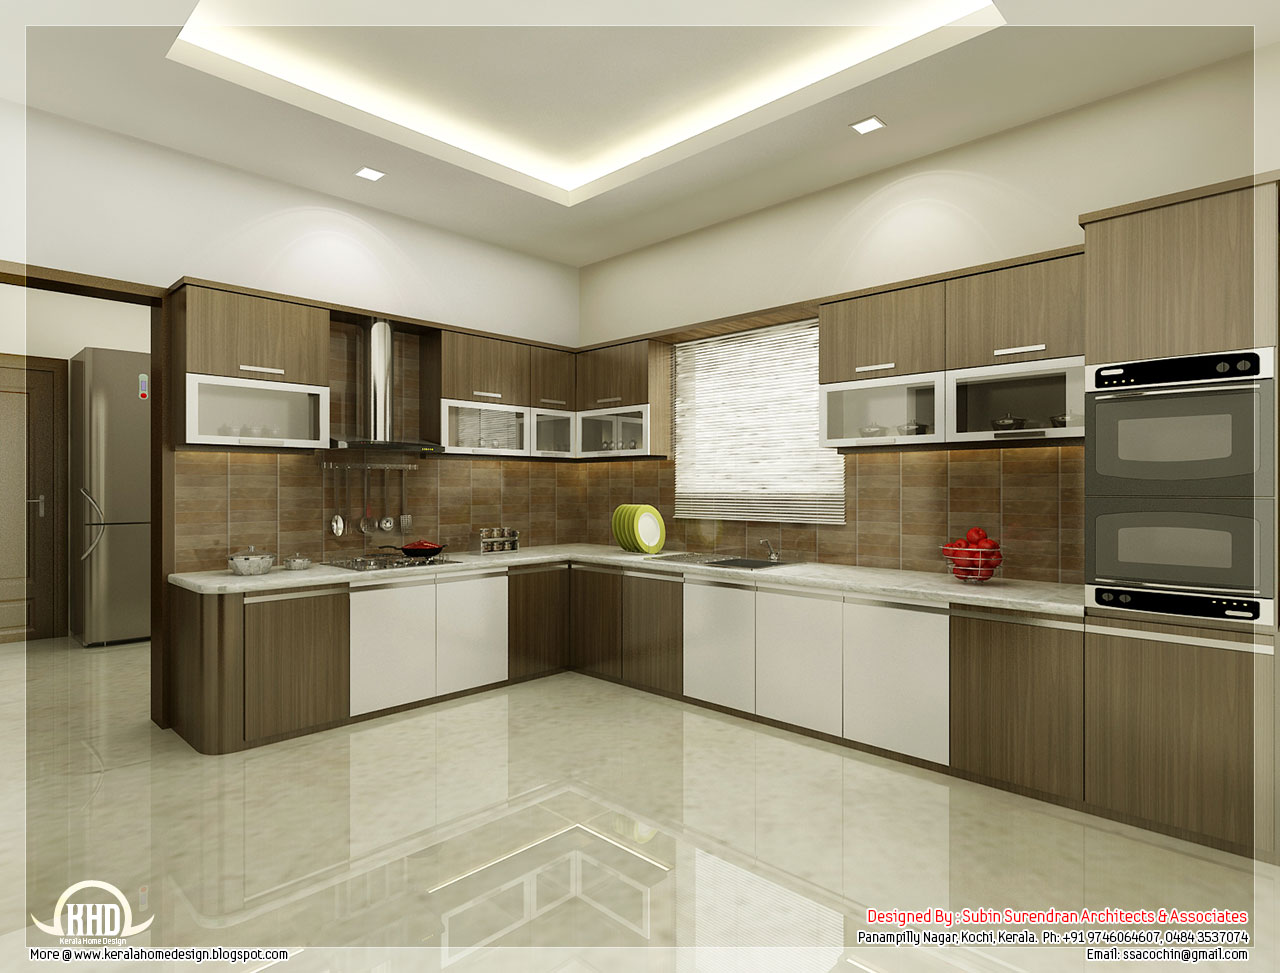 Kitchen and dining interiors - Kerala home design and floor plans